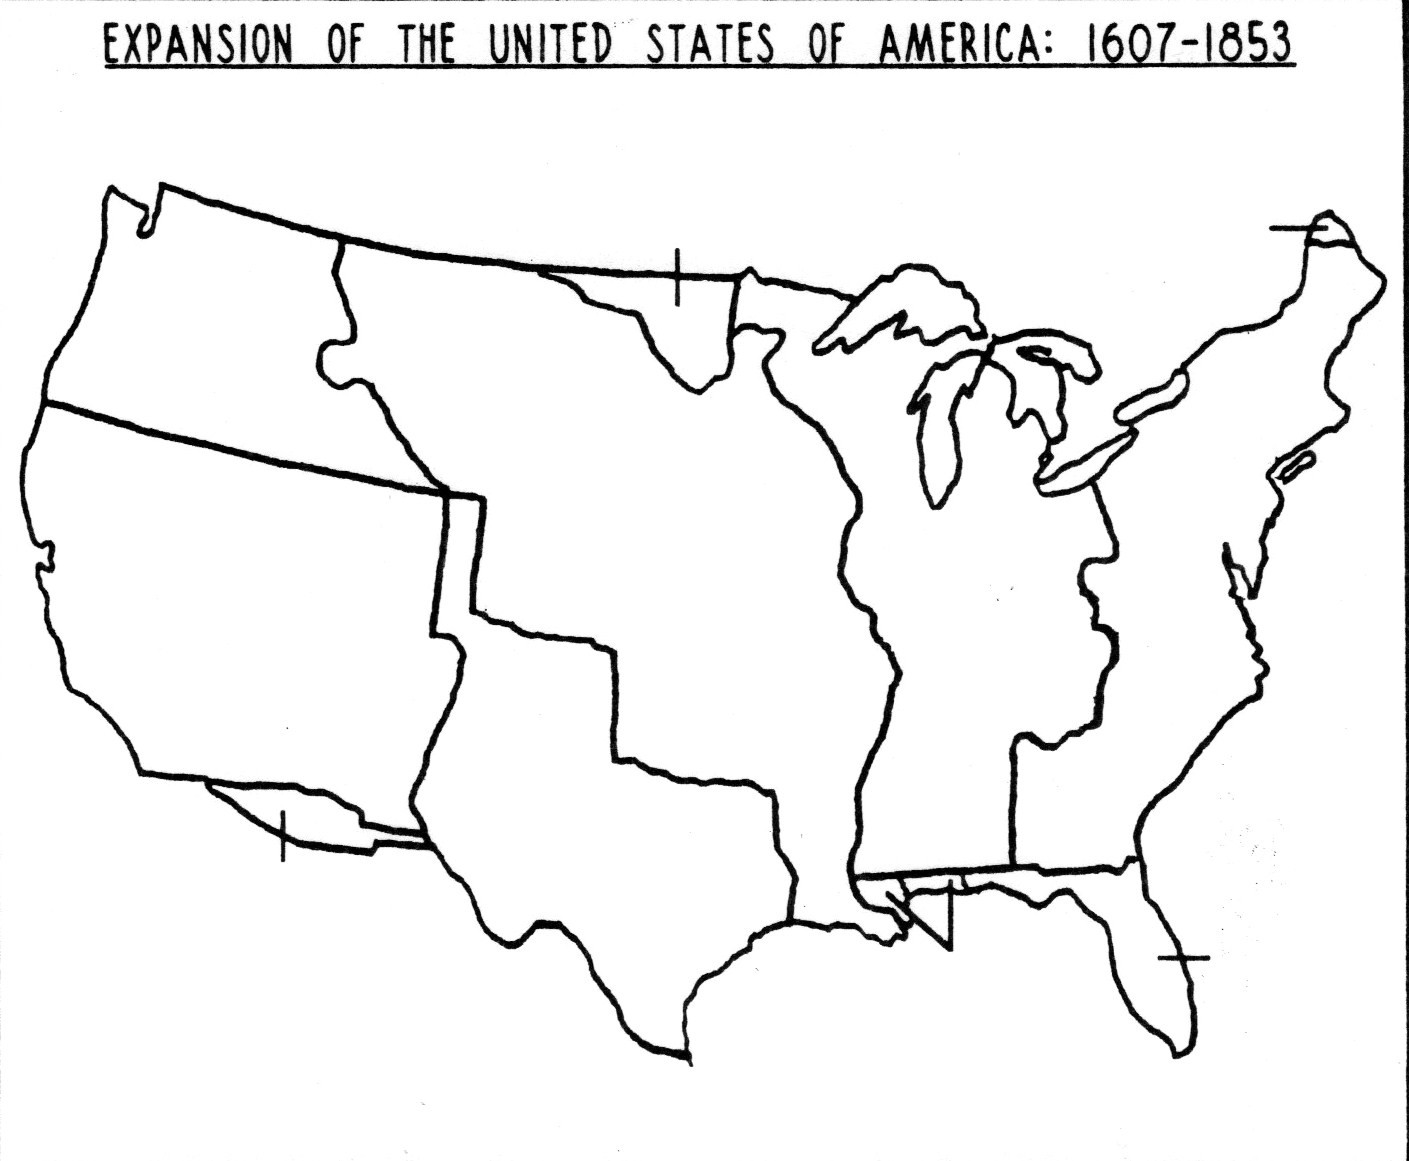 Proddetail further Geog courses further Usa Map Vector Free in addition Map Of West Canada together with Hiking Map Coloring Page. on us map of oregon trail